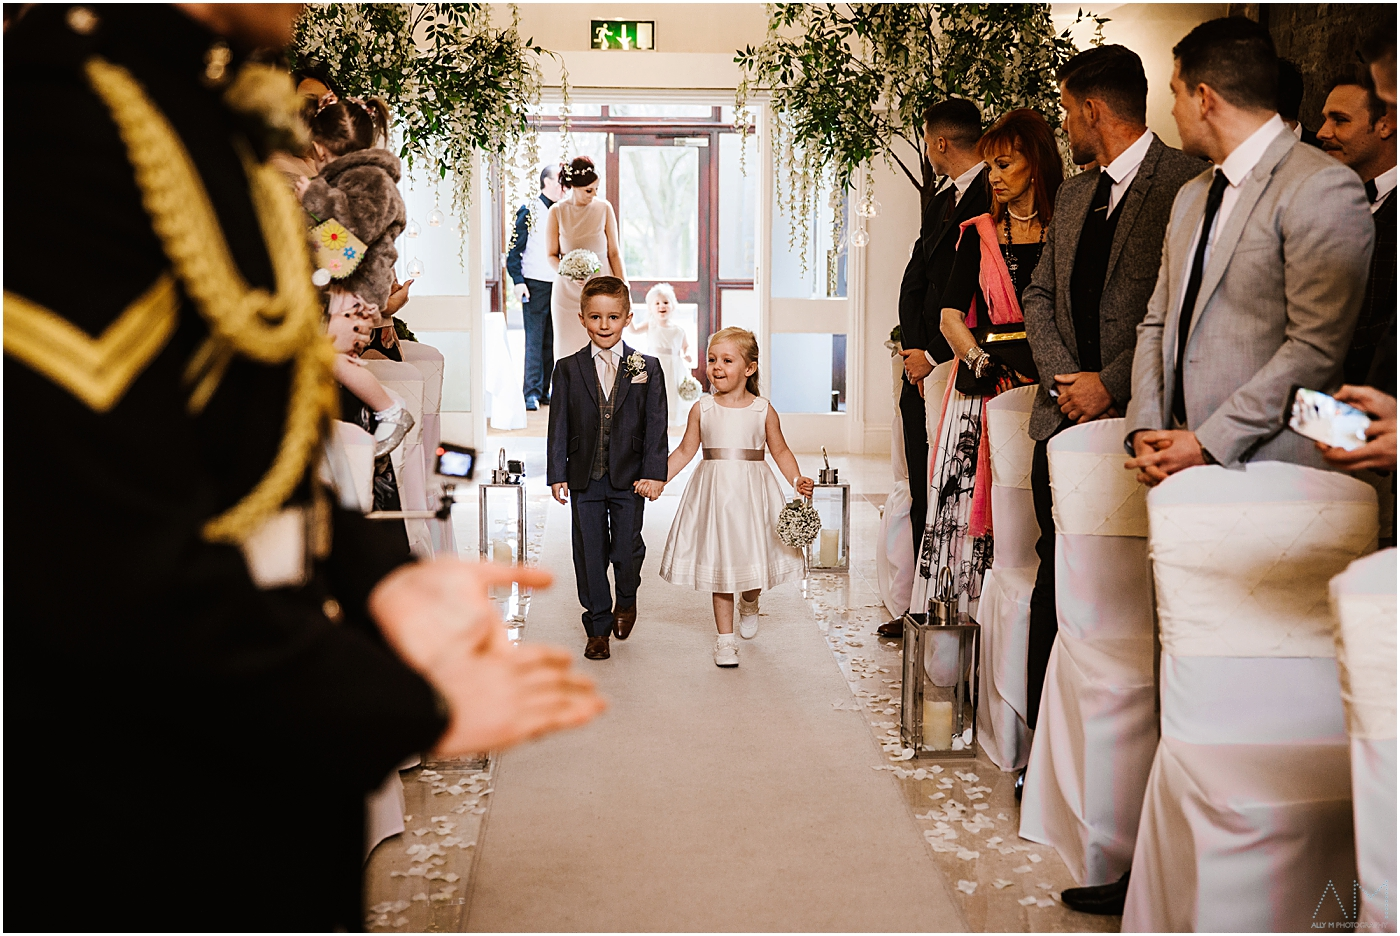 Children walking down the isle